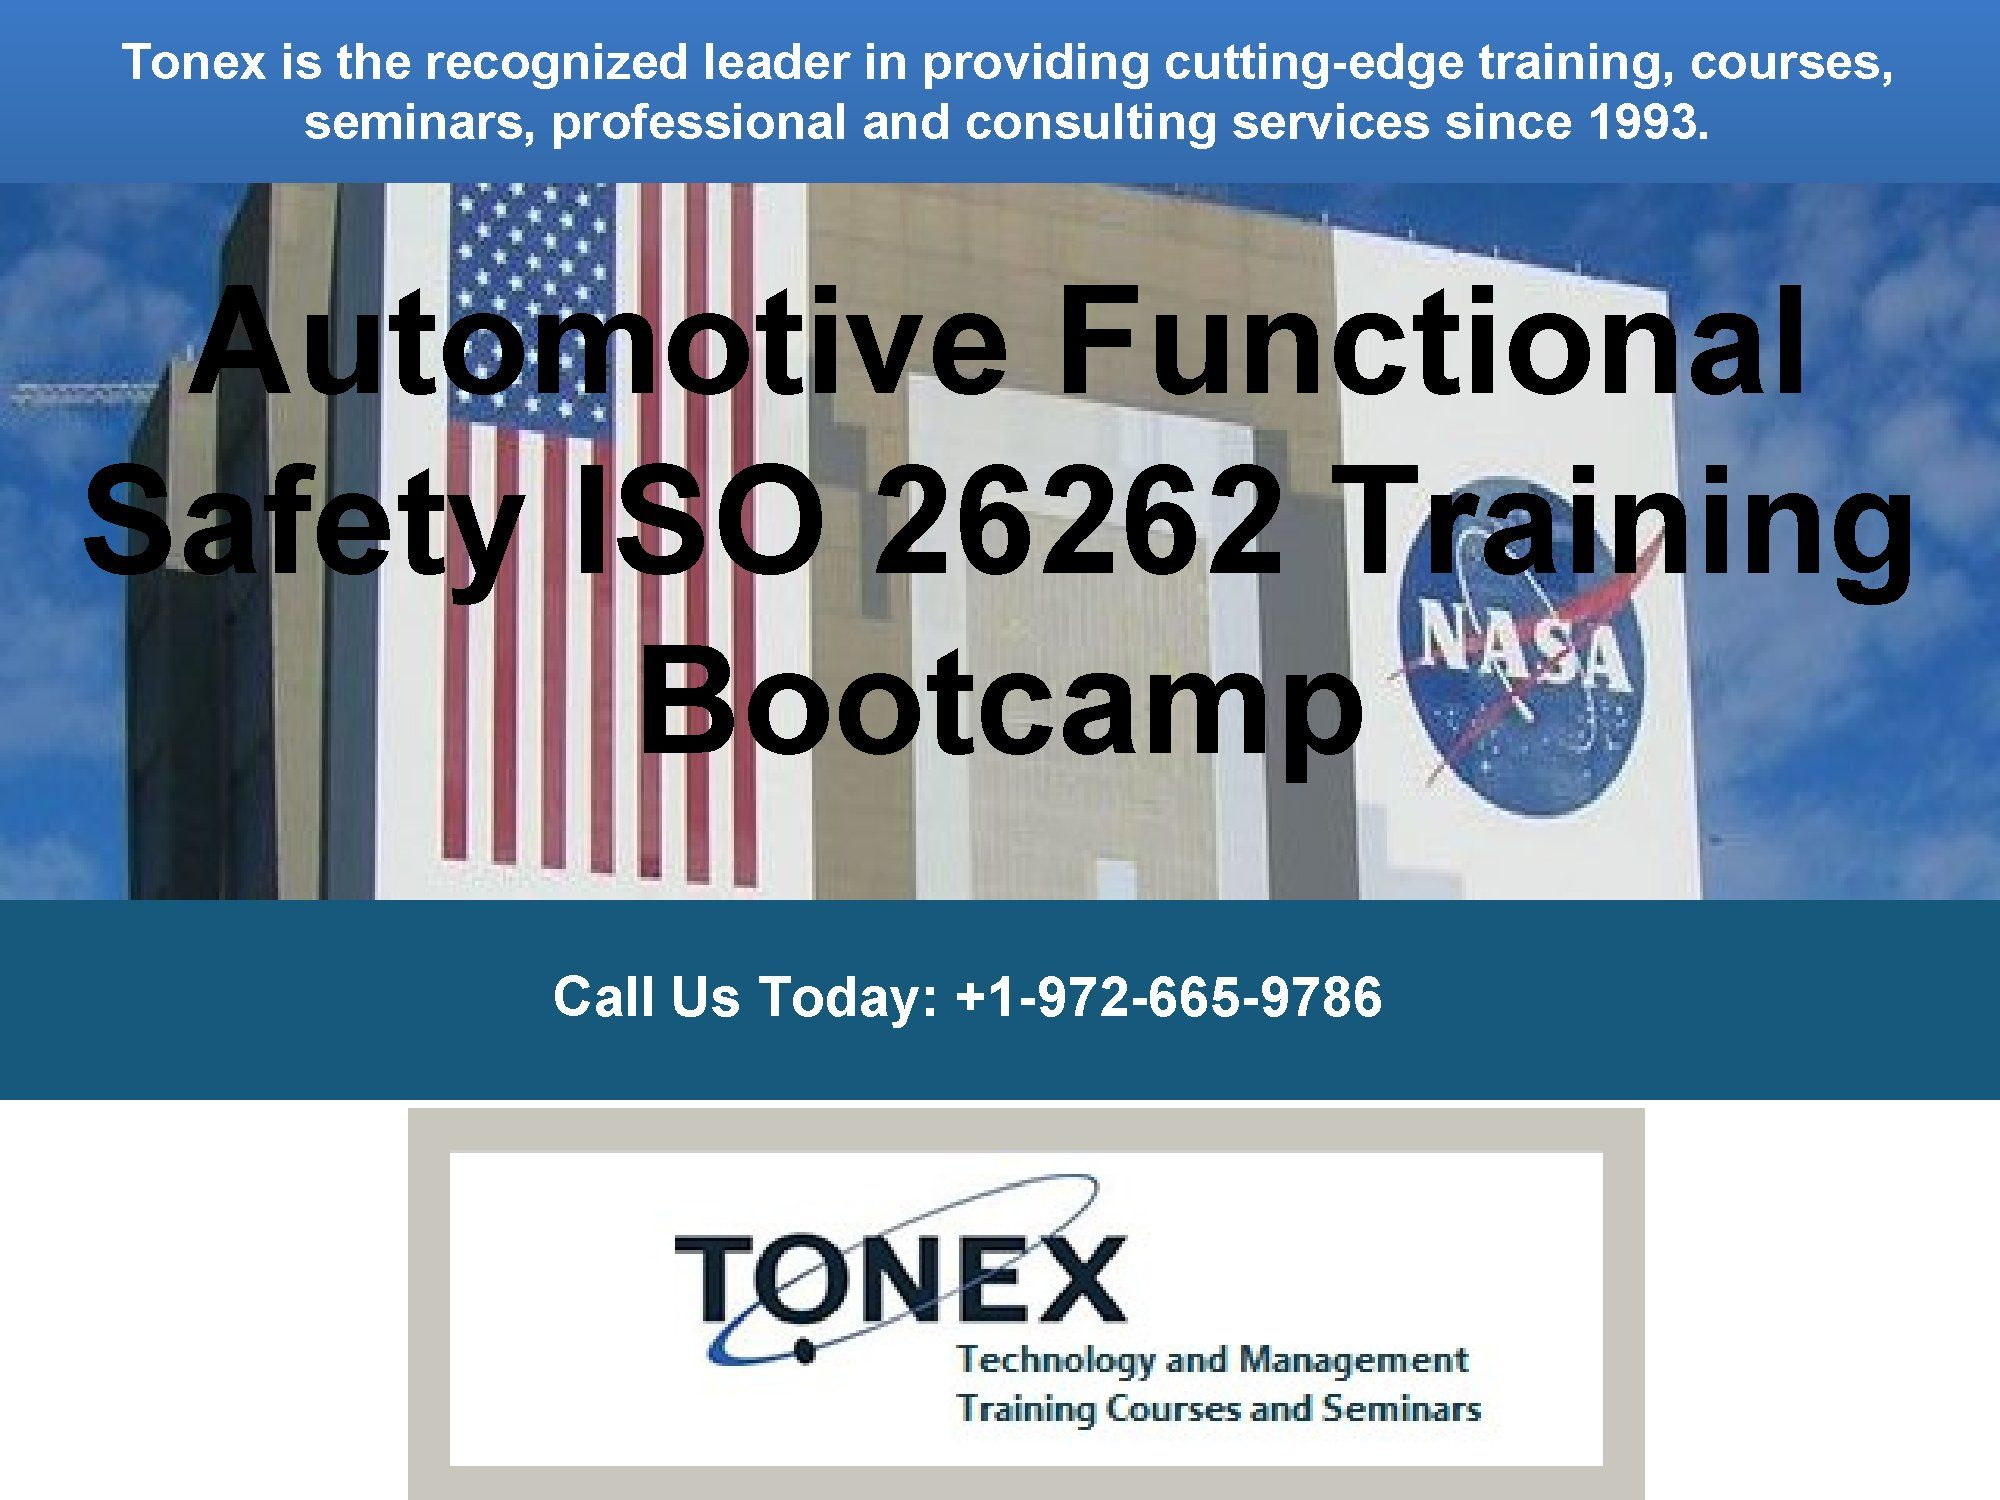 Automotive functional safety ISO 26262 training provides